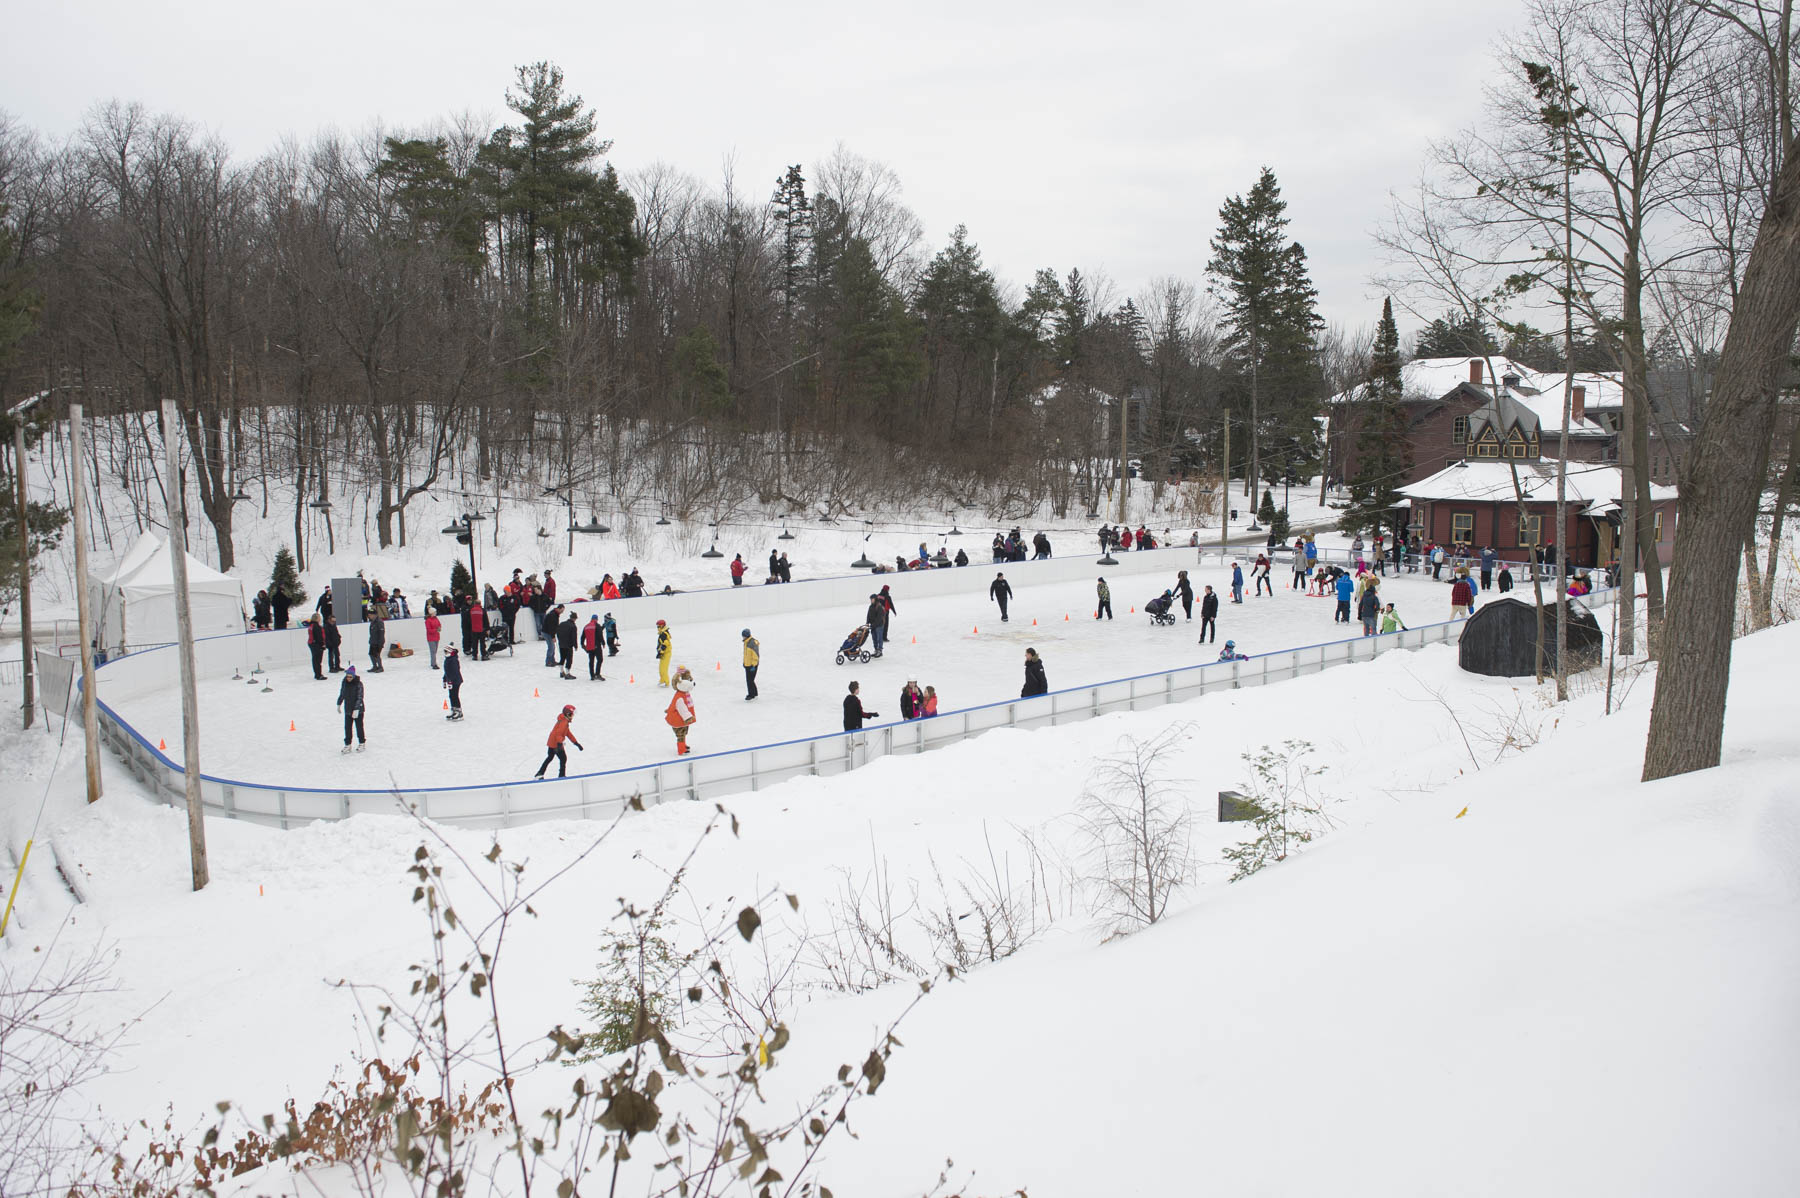 During Winter Celebration at Rideau Hall on January 27, 2018, young and old alike had fun outside while taking part in winter sports such as skating.